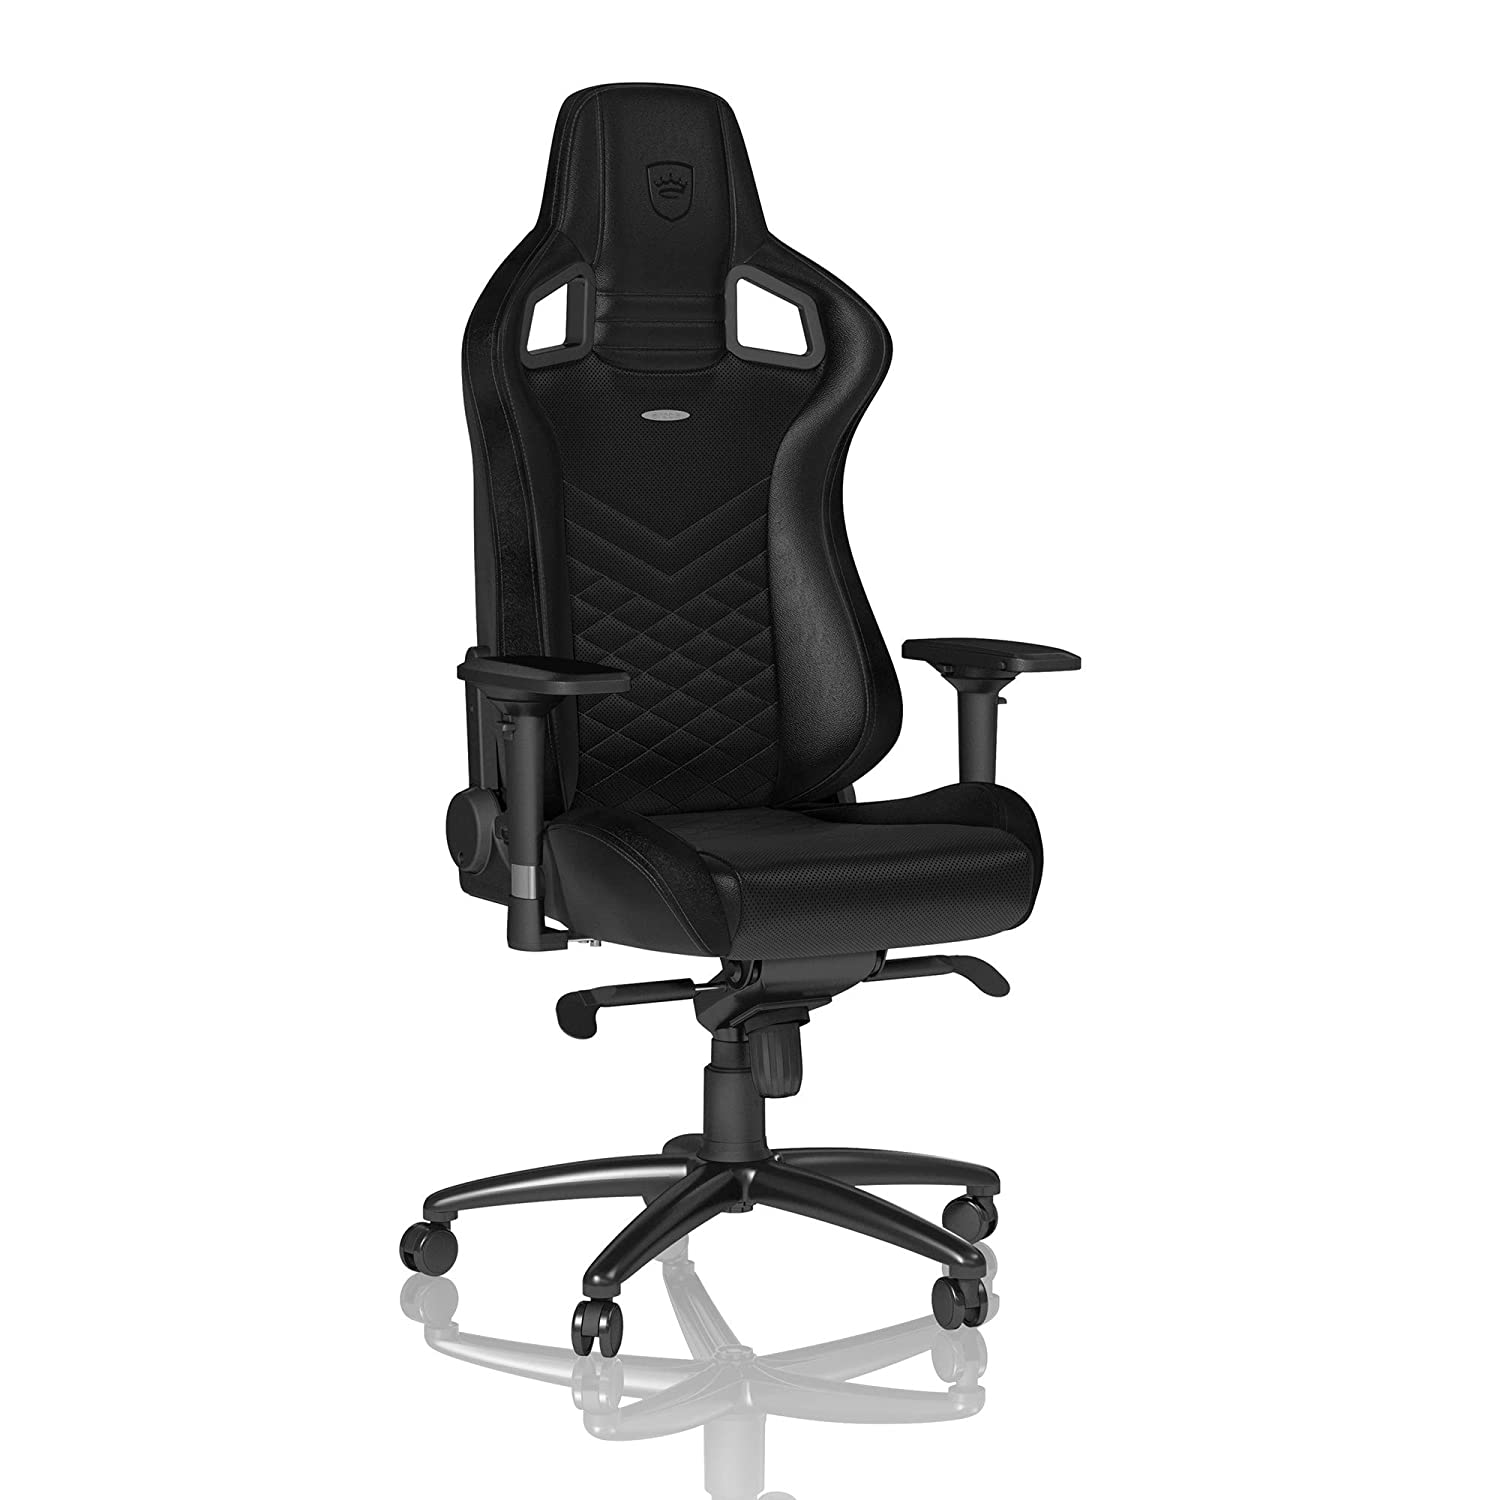 265 135° Lumbar Desk Faux Support Epic Lbs Seat Chair Noblechairs Gaming Racing Reclinable Design Pu Office Cushion Leather TXilkPuwOZ